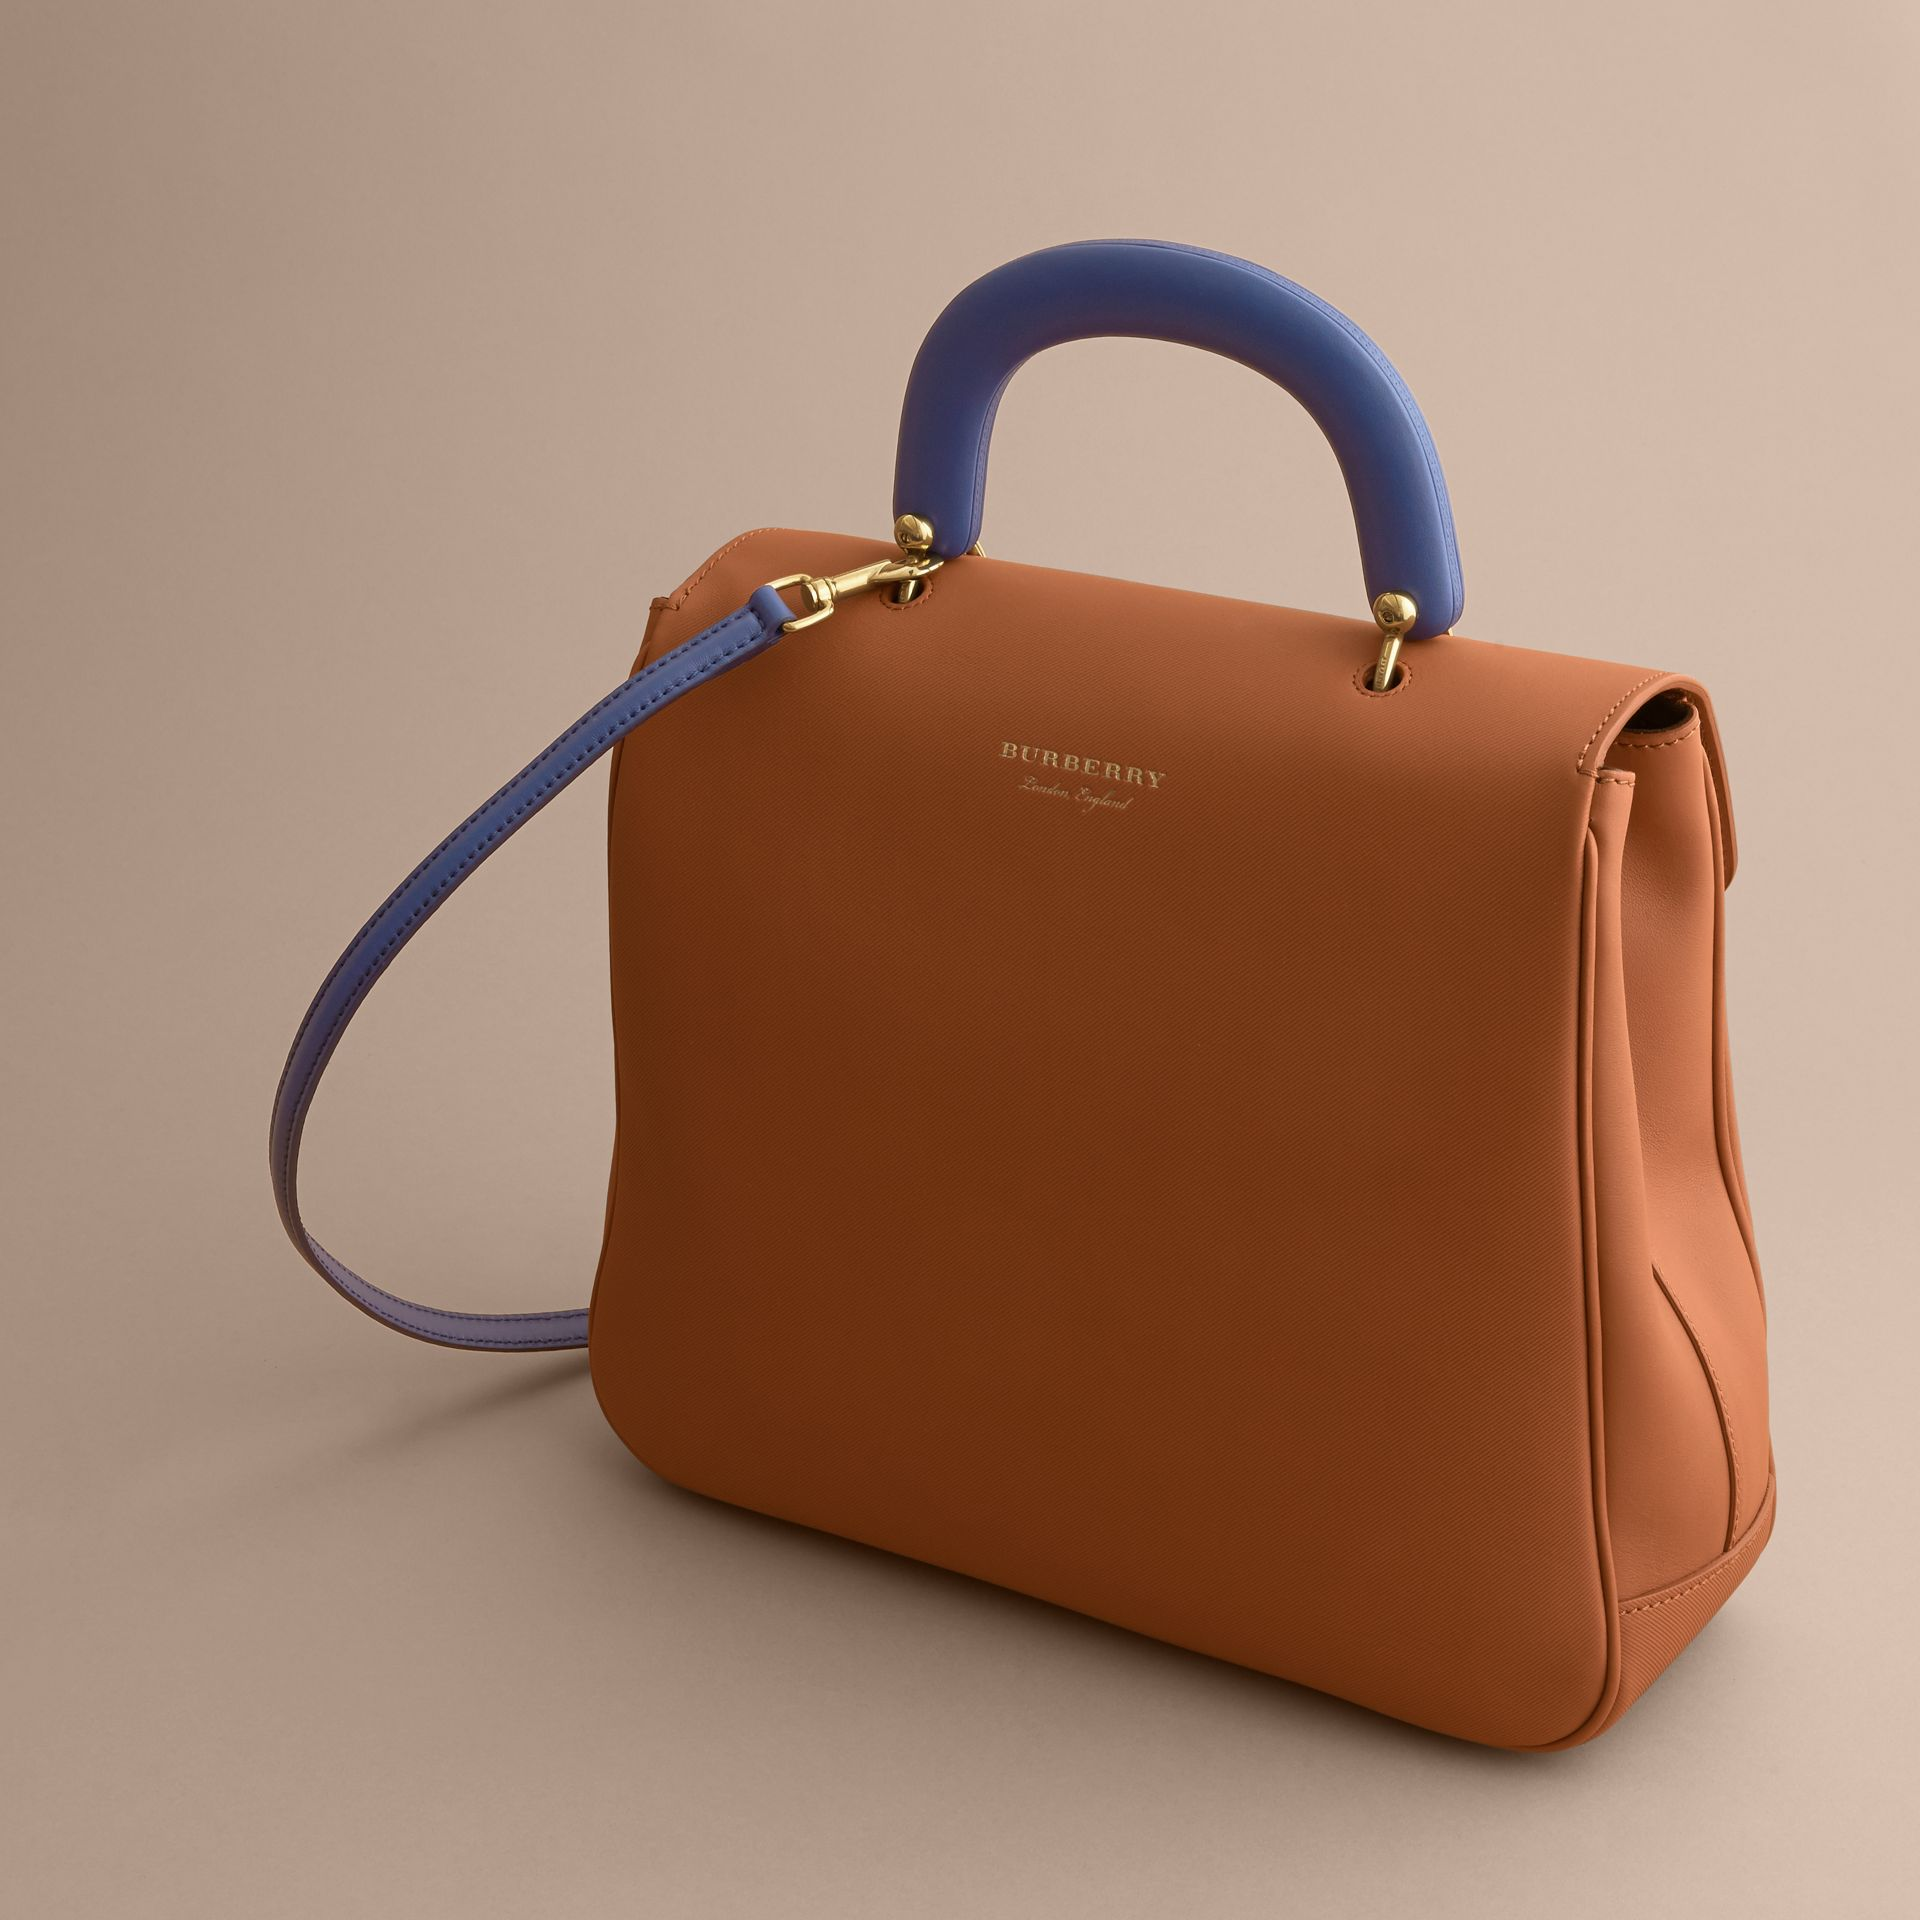 The Large DK88 Top Handle Bag in Bright Toffee - Women | Burberry - gallery image 3